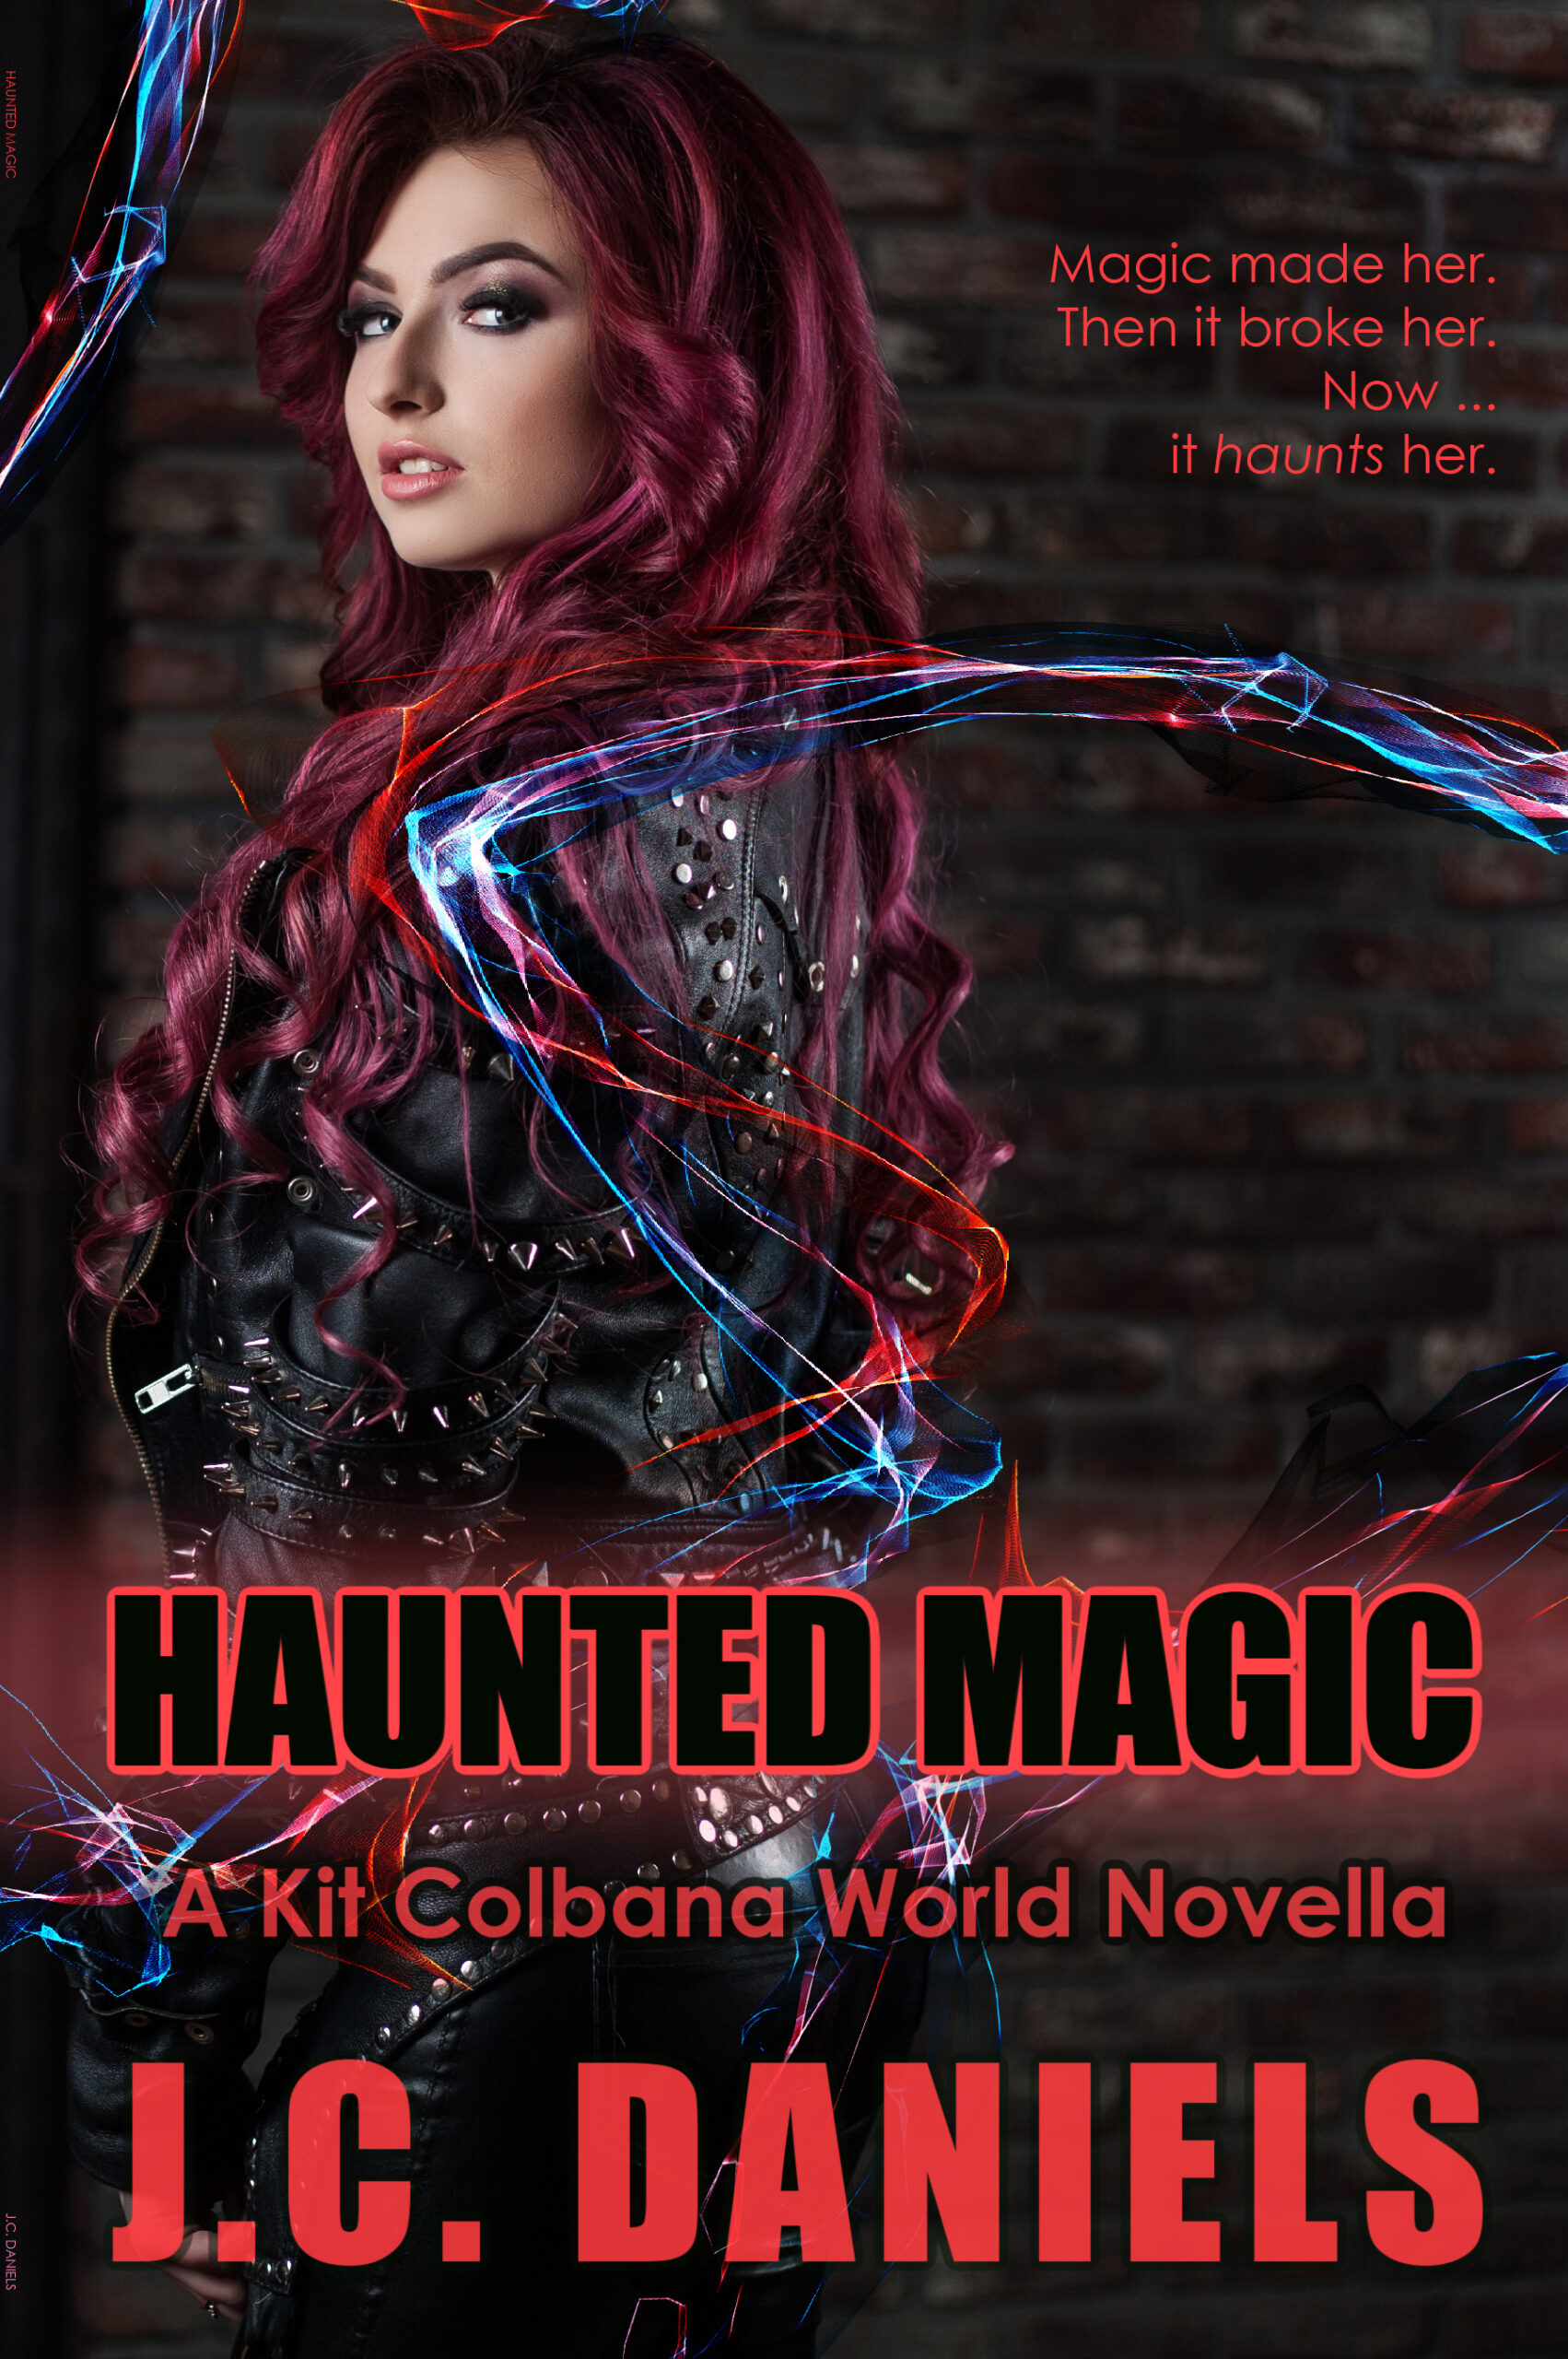 cover haunted magic -red-headed woman looking over shoulder toward screen. mystical elements.